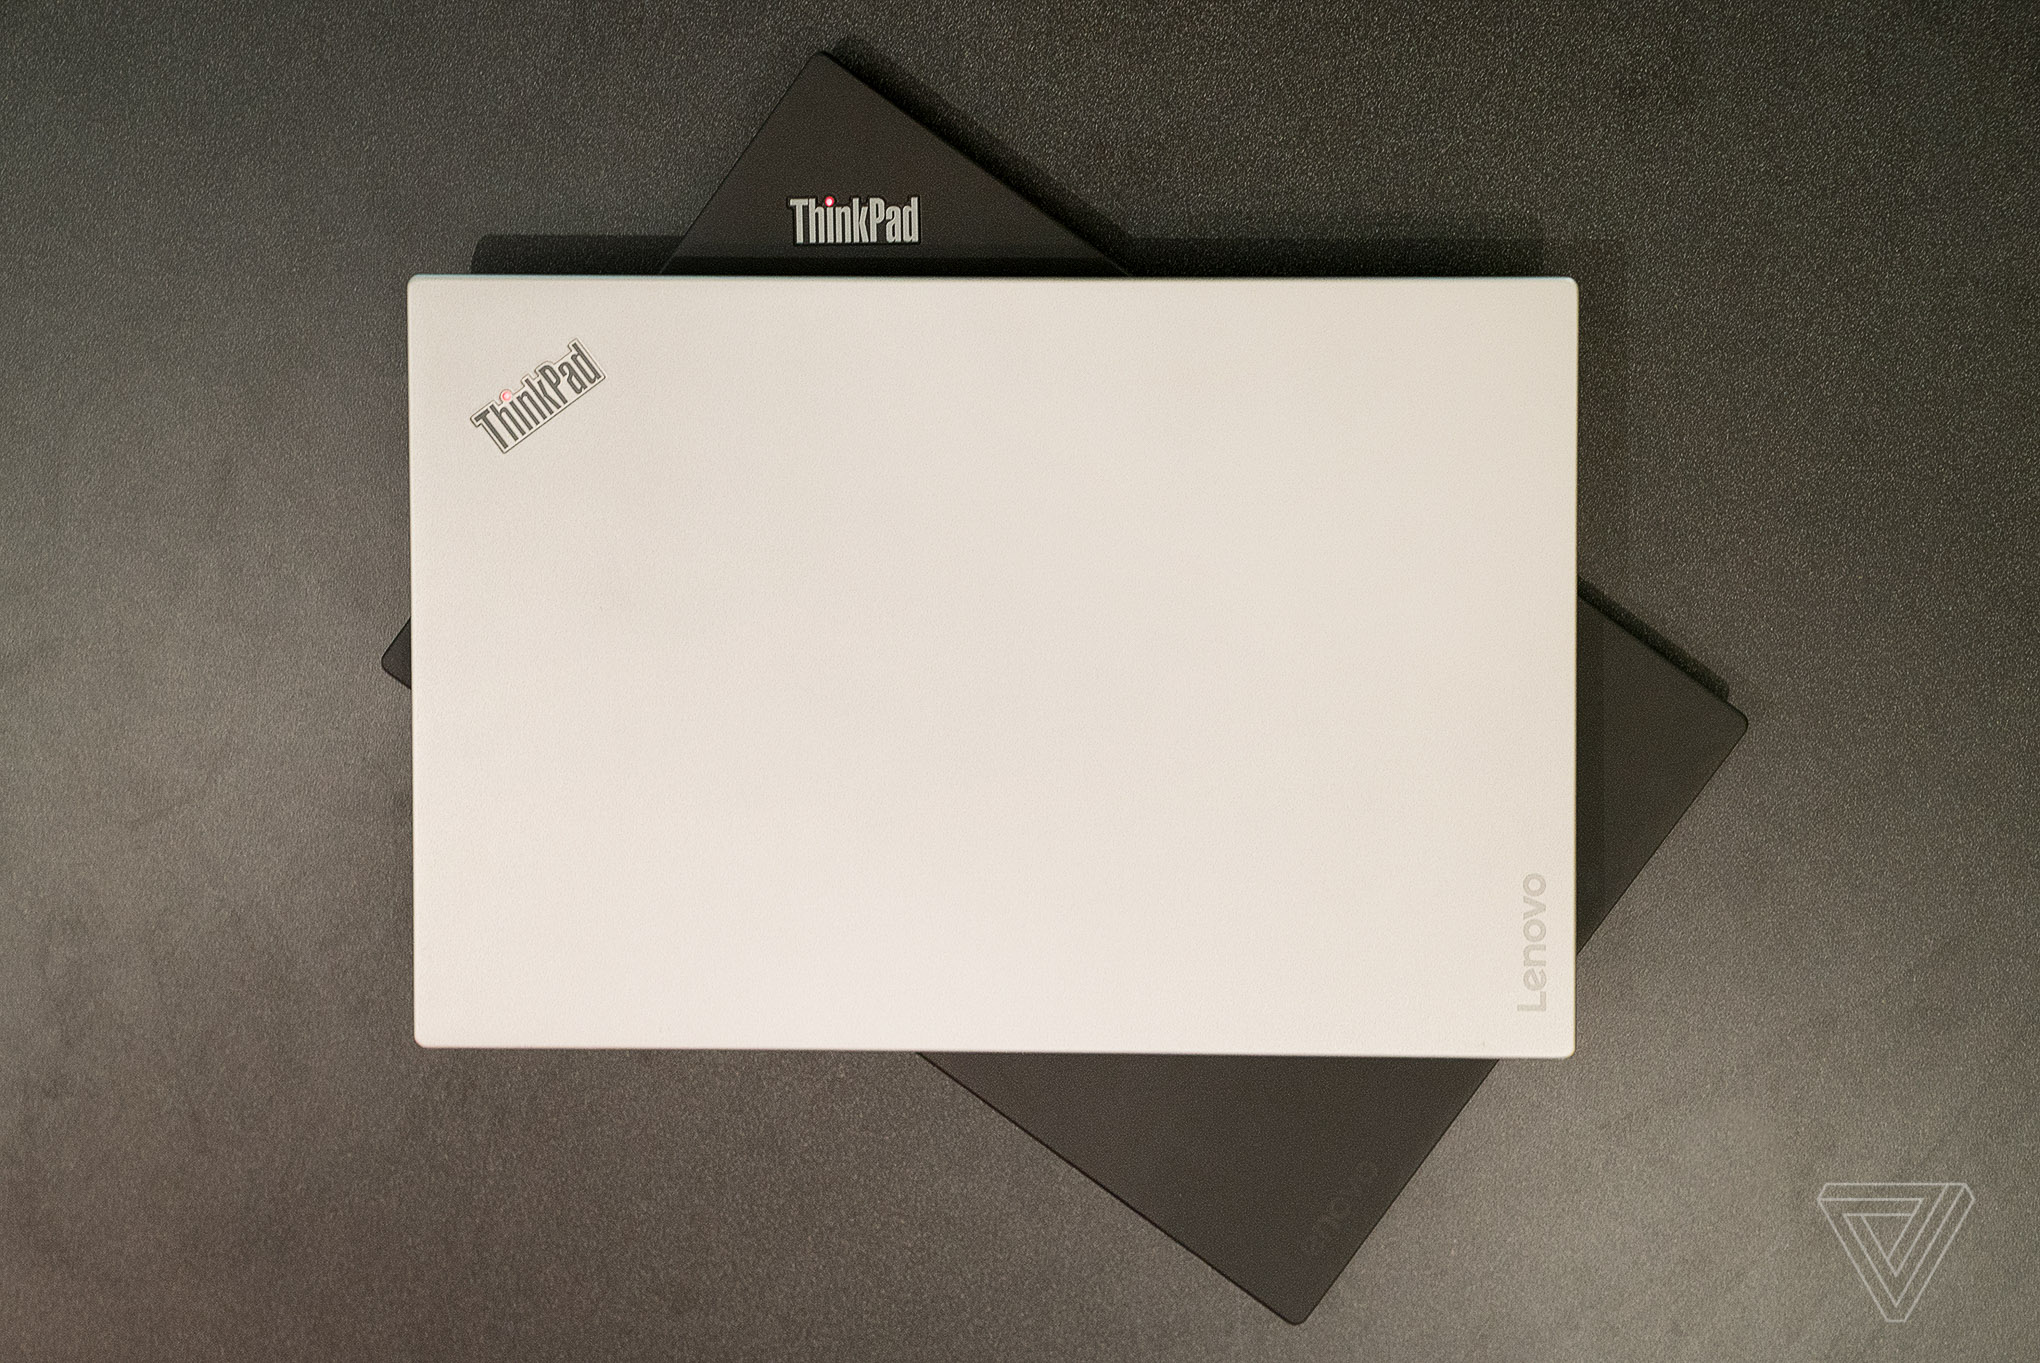 Lenovo ThinkPad X1 Carbon hands-on gallery